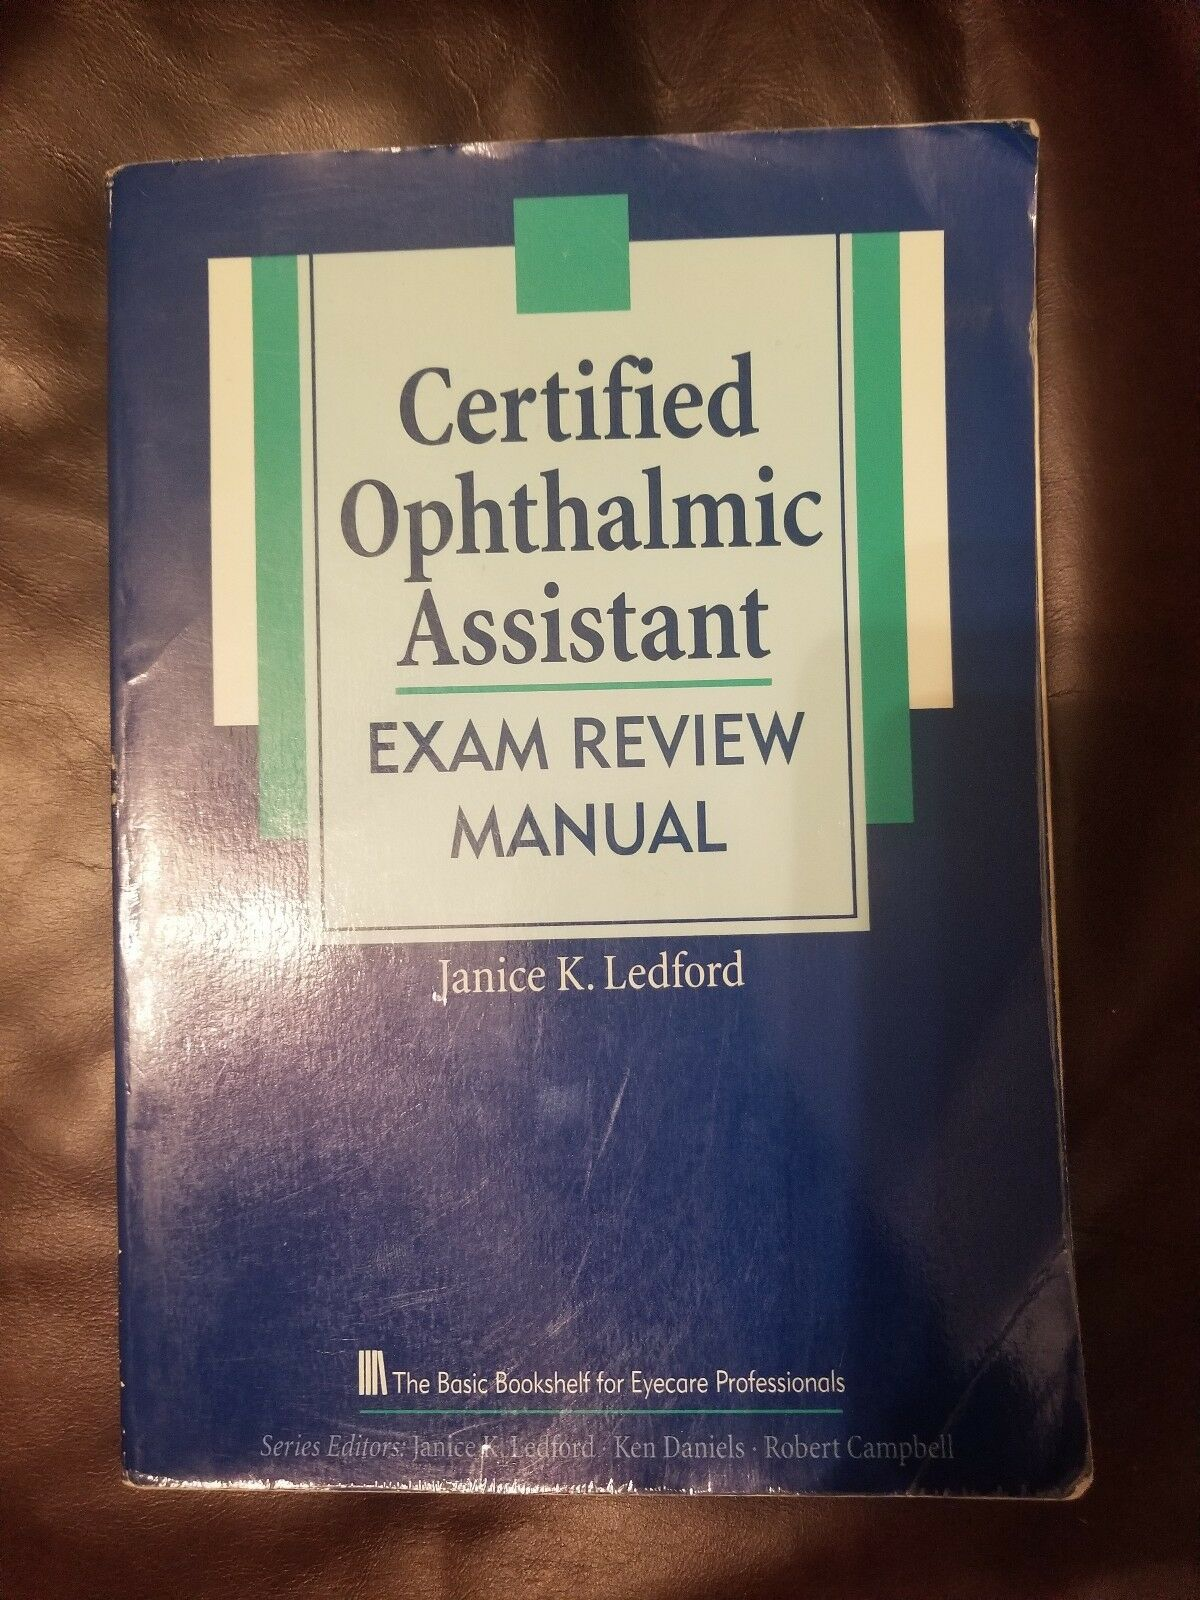 Certified Ophthalmic Assistant Exam Review Manual by Janice K. Ledford  (2012, Paperback) | eBay